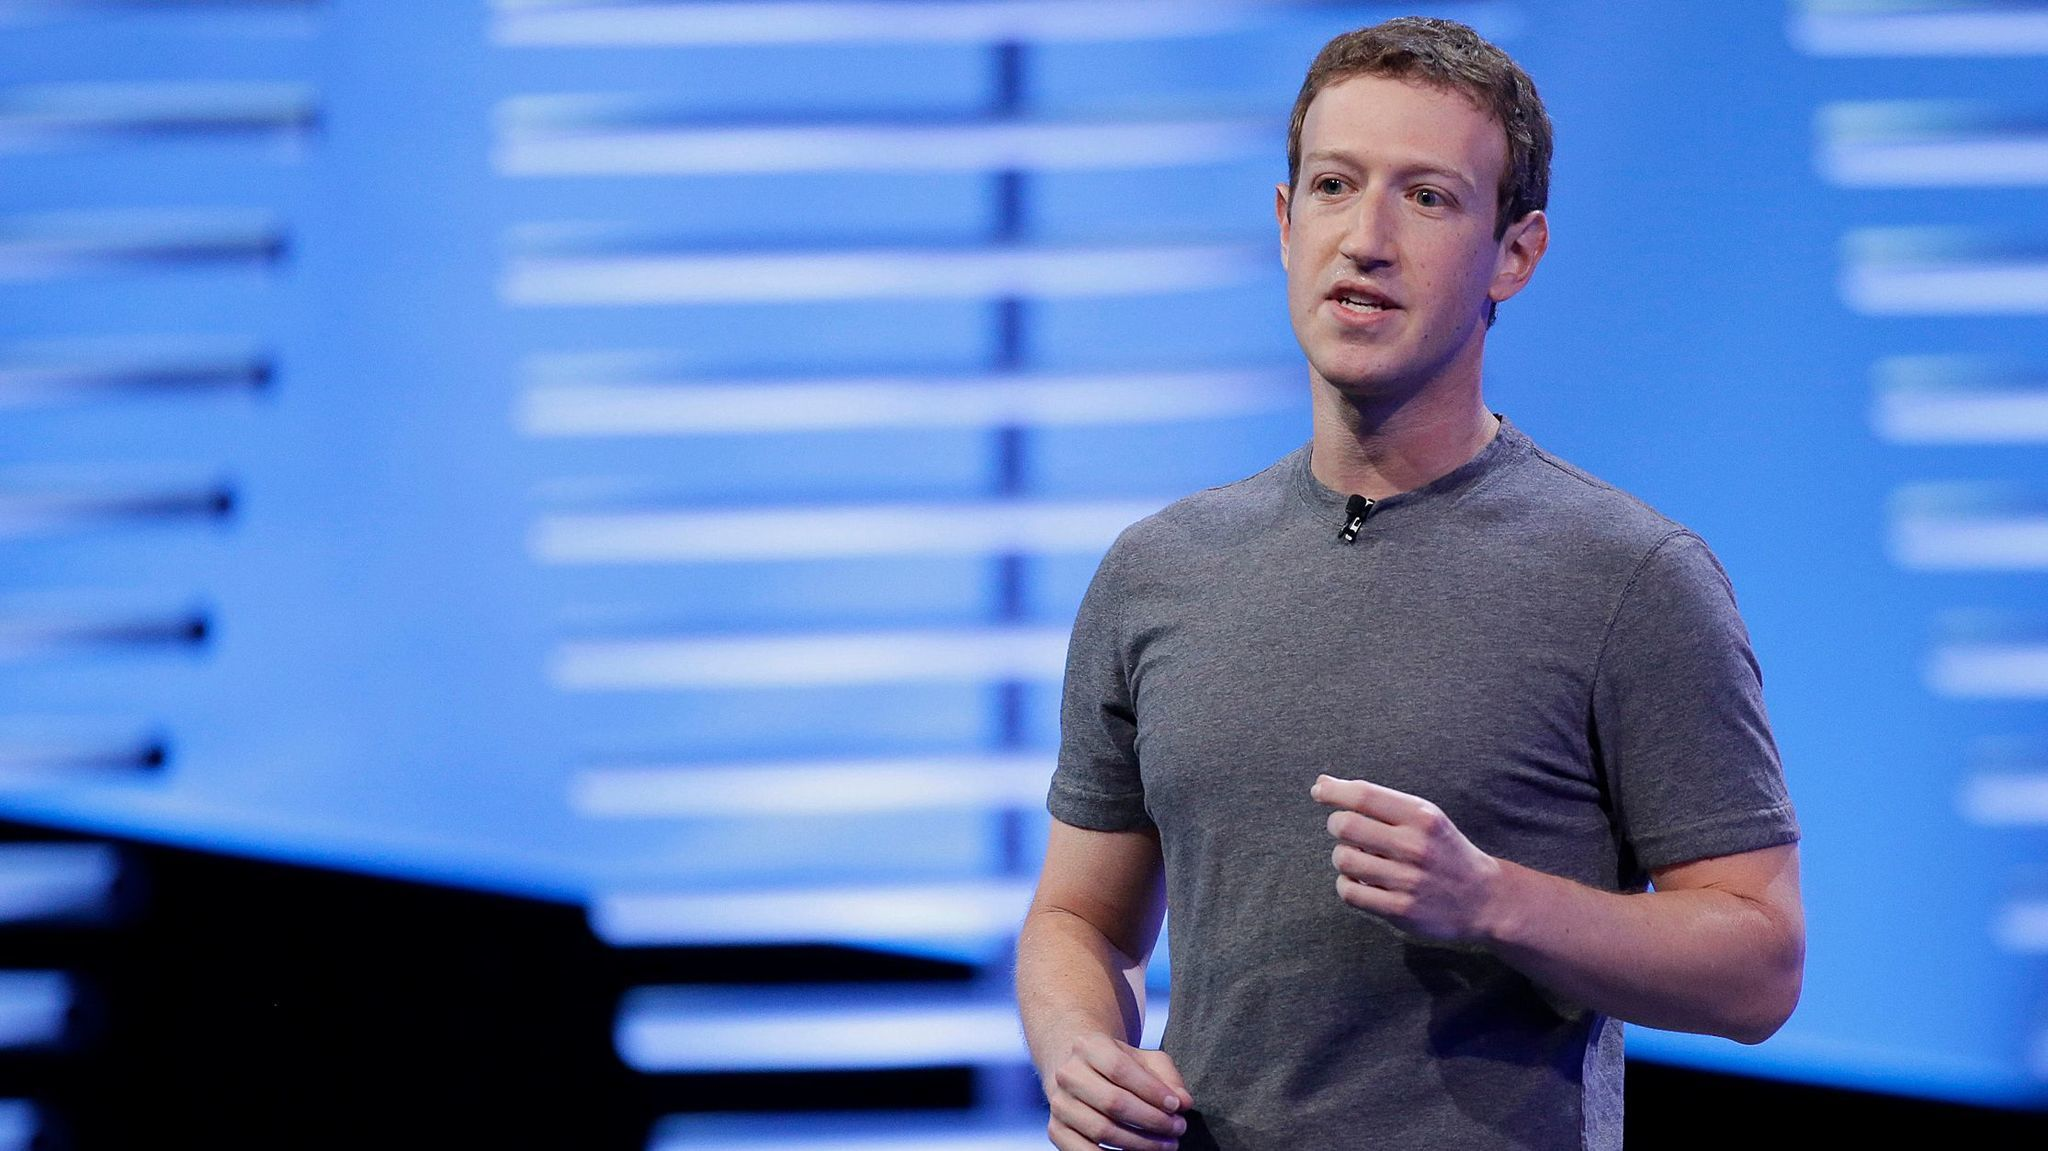 Facebook Chief Executive Mark Zuckerberg speaks during the keynote address at the F8 Facebook Developer Conference in San Francisco on April 12, 2016.